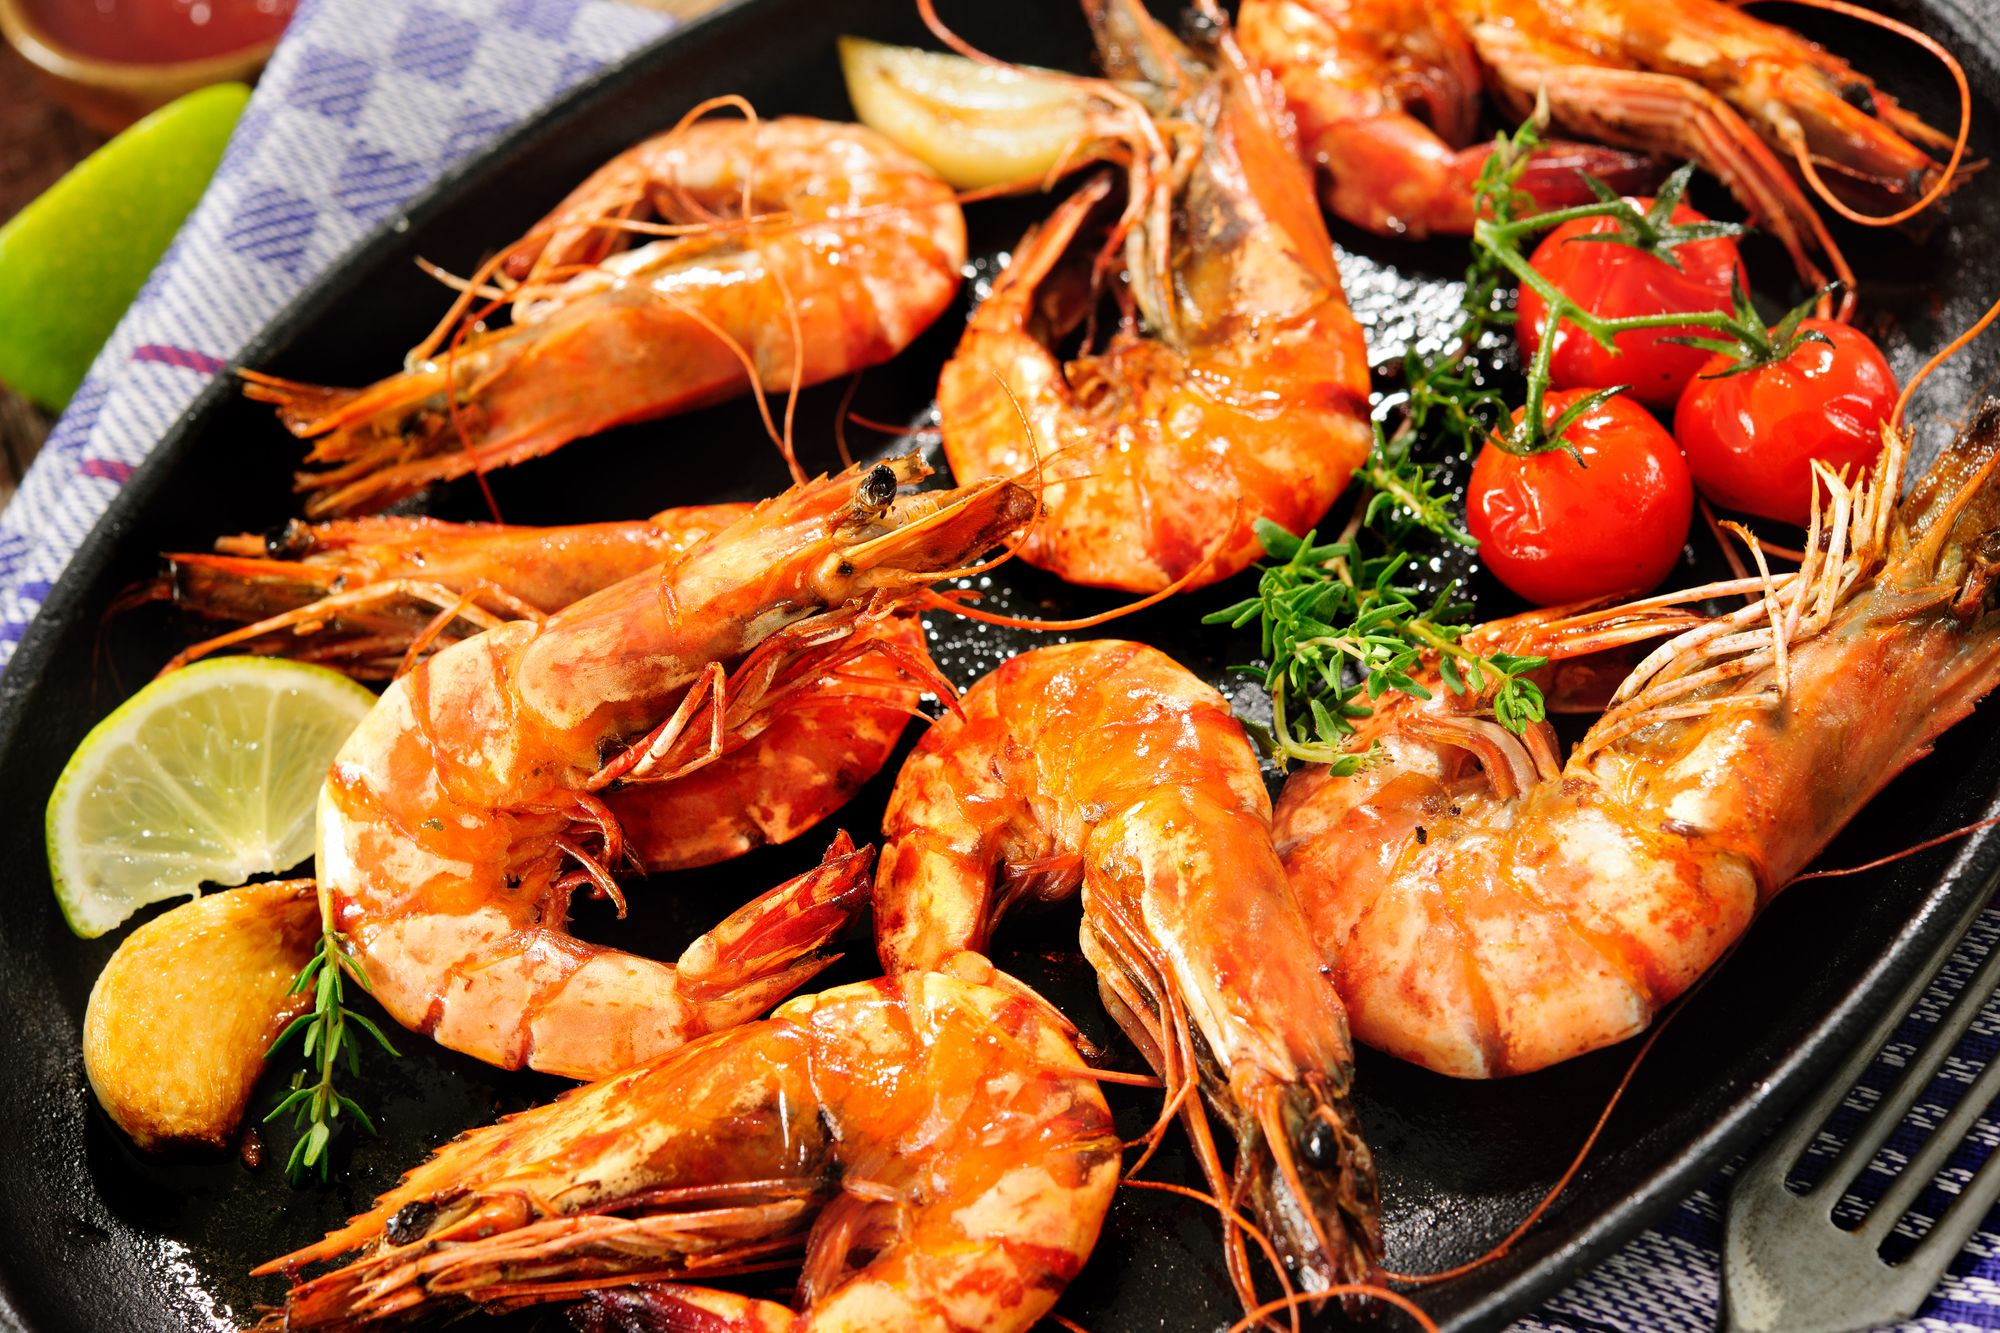 Spanish-Style Garlic Prawns